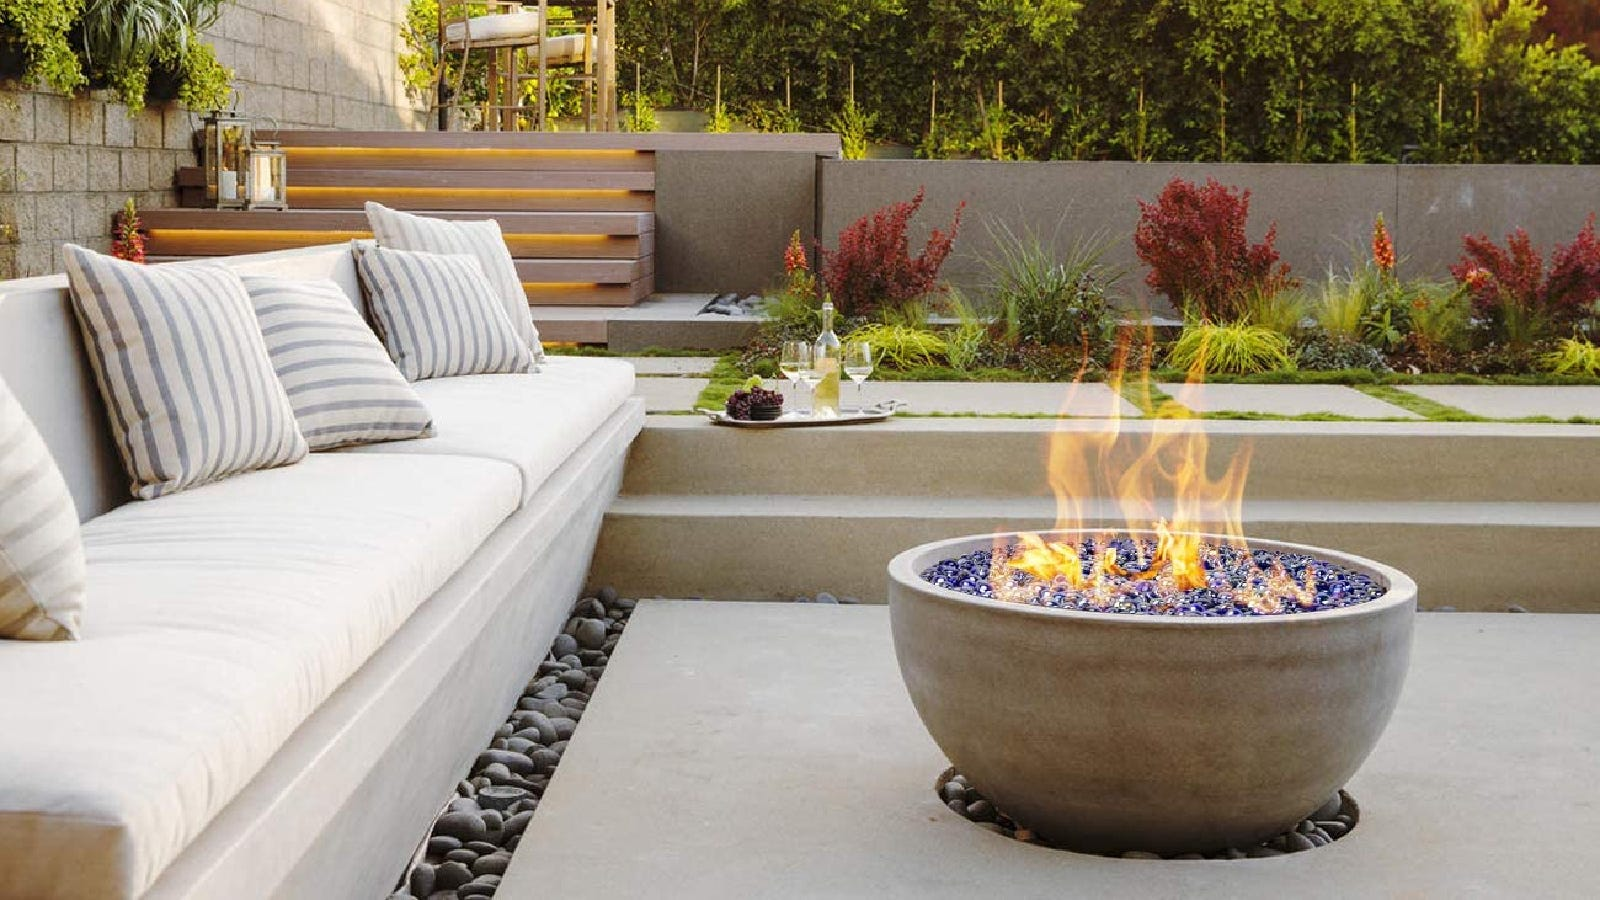 A bowl style fire pit filled with bright blue glass beads made by OnlyFire, on a beautiful dzen patio surrounded by lovely plants.